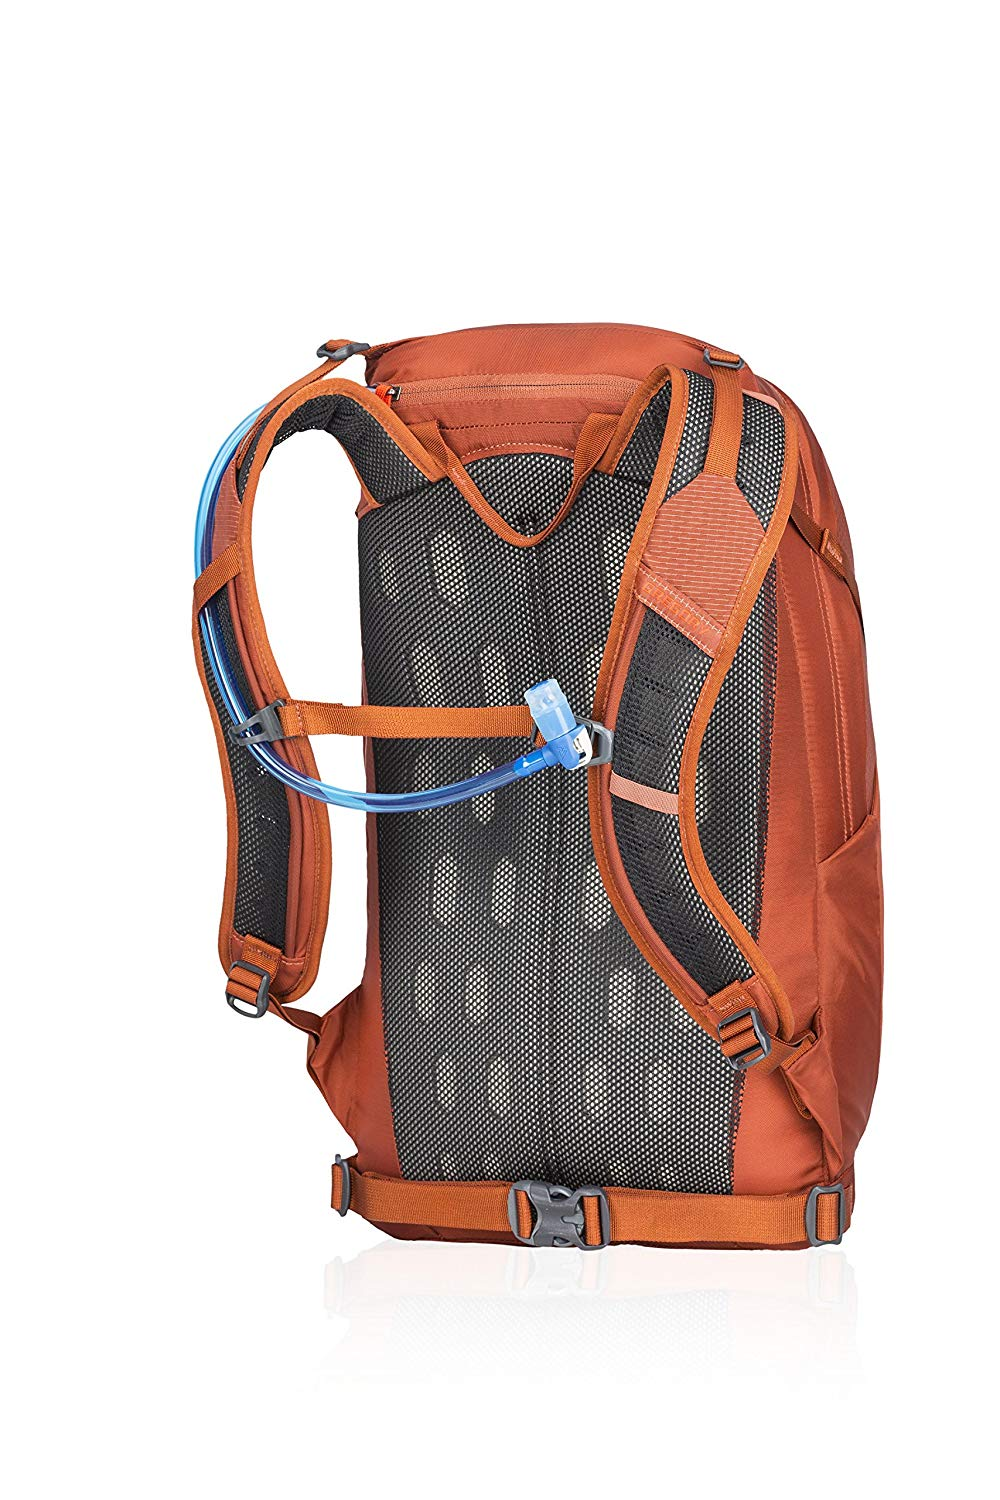 Gregory Inertia 20 3D-Hydro Daypack - Ventilated Backpanel